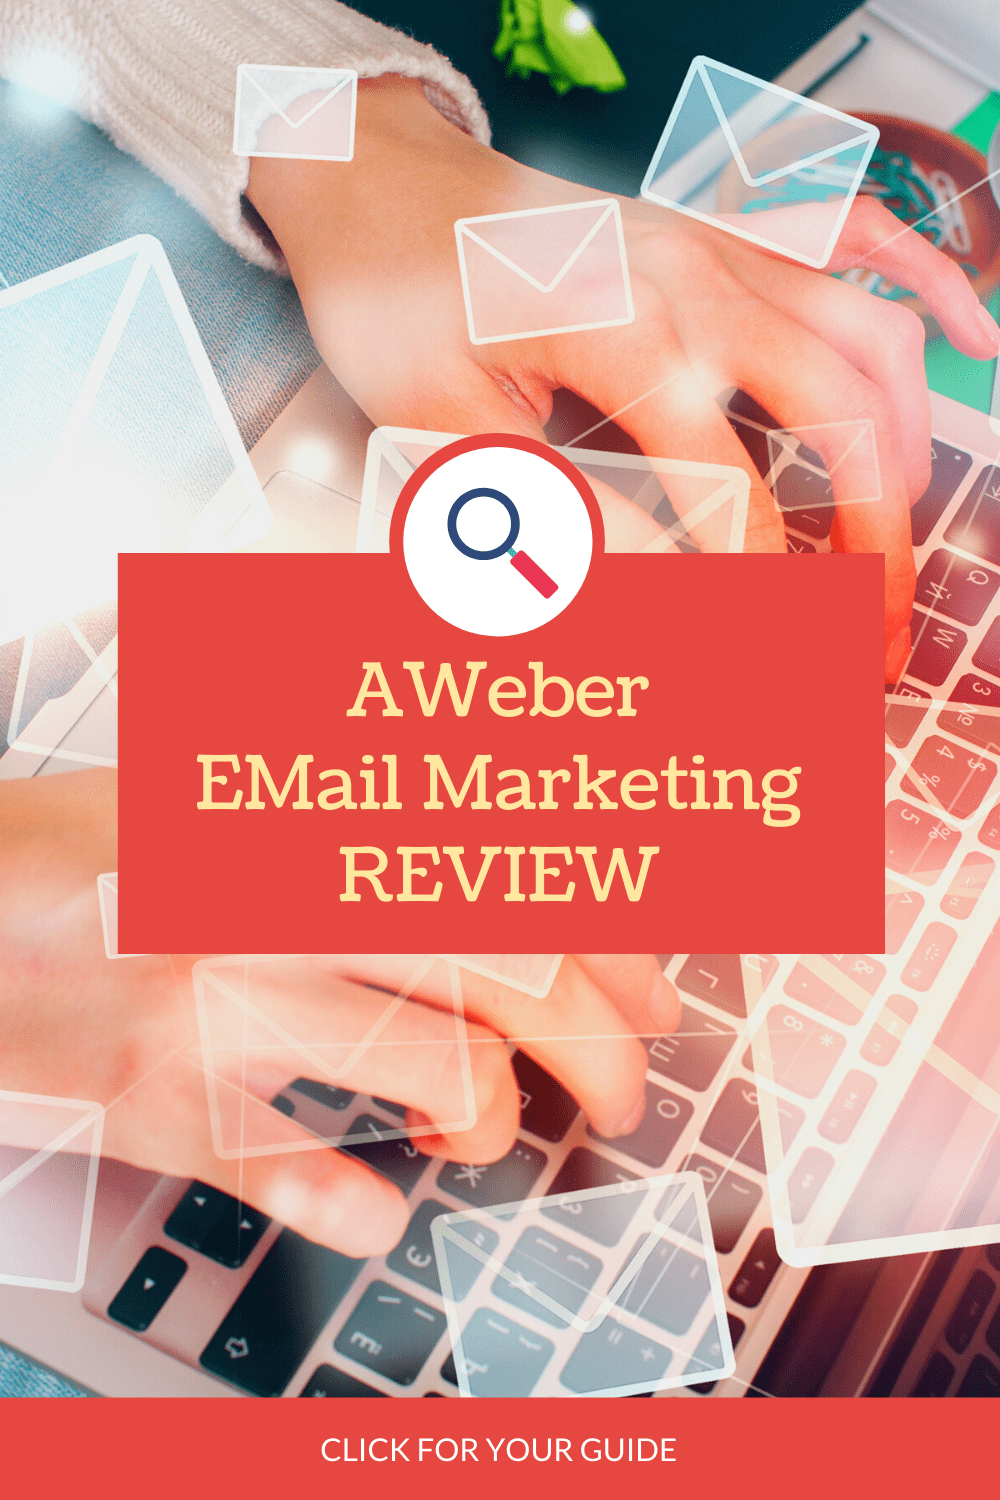 Aweber Email Marketing Review Pin 4